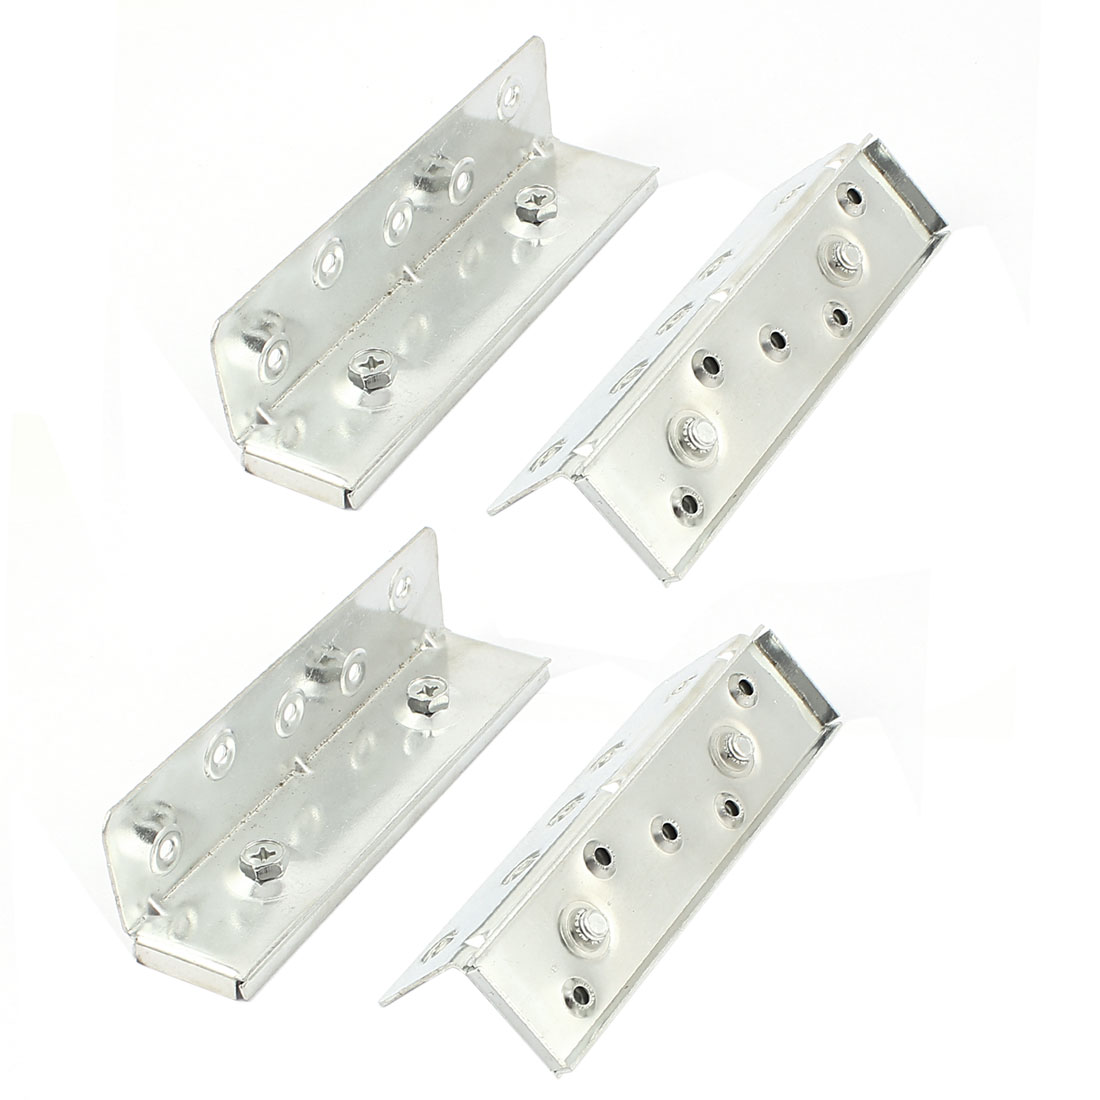 Bed Connecting Brackets Fitting 155mm Length Silver Tone 4pcs